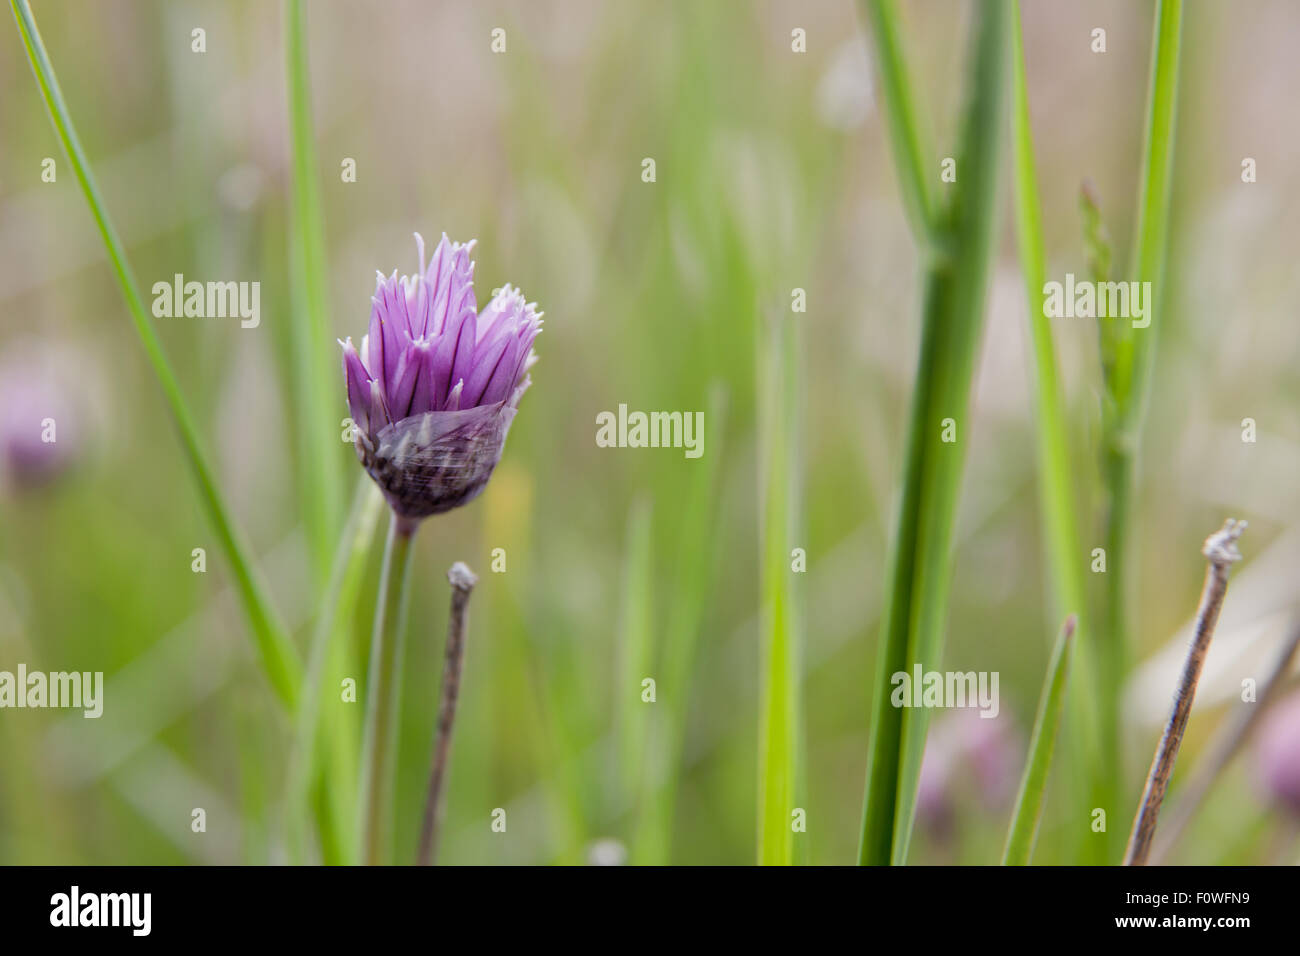 A Purple Chive Plant Flower Blooming Through Delicate Paper Like